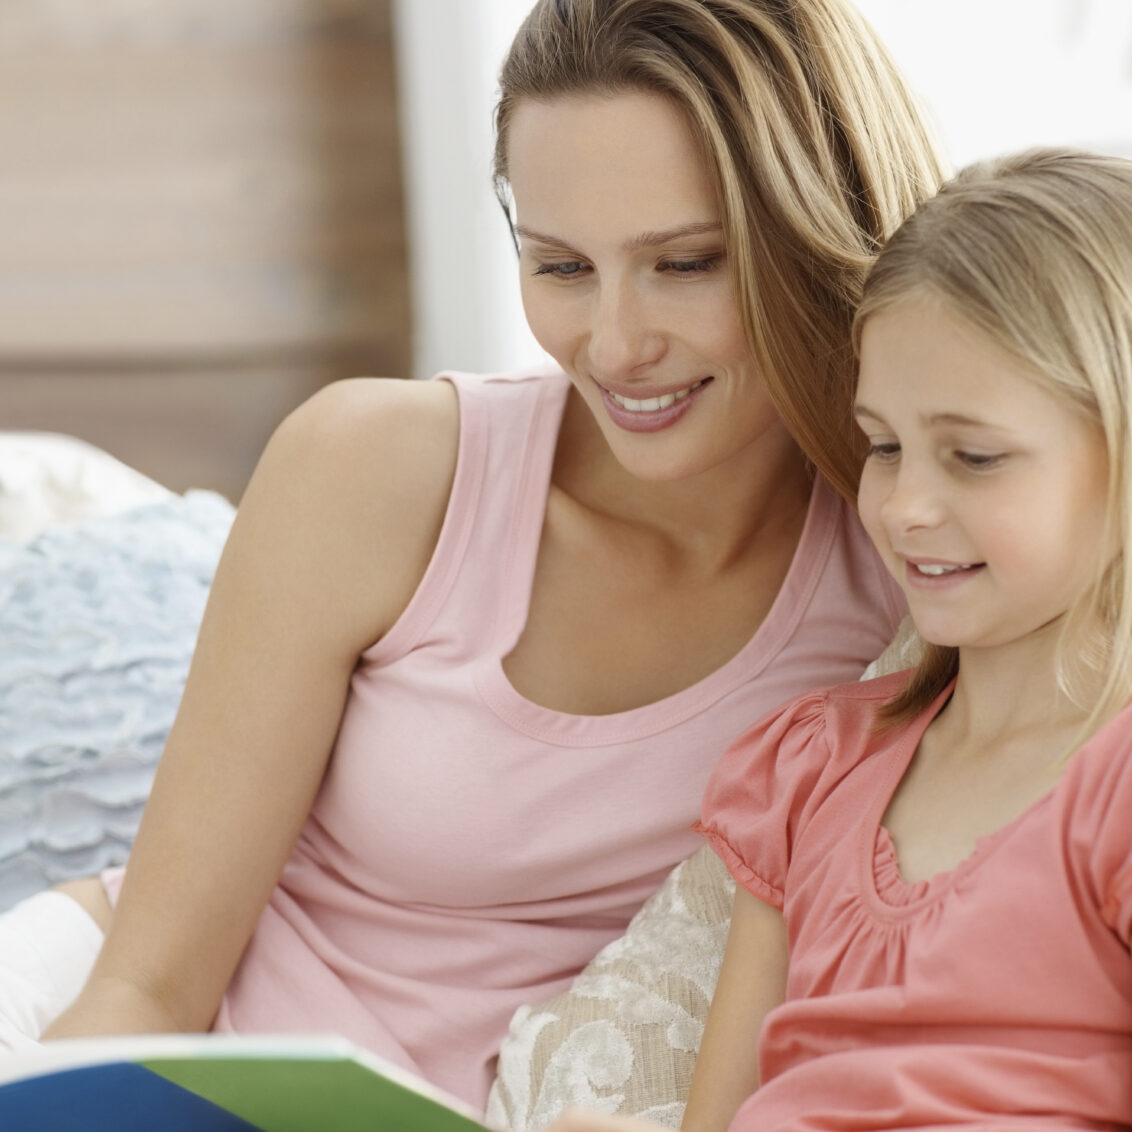 Portrait of a mother and daughter reading book together at home